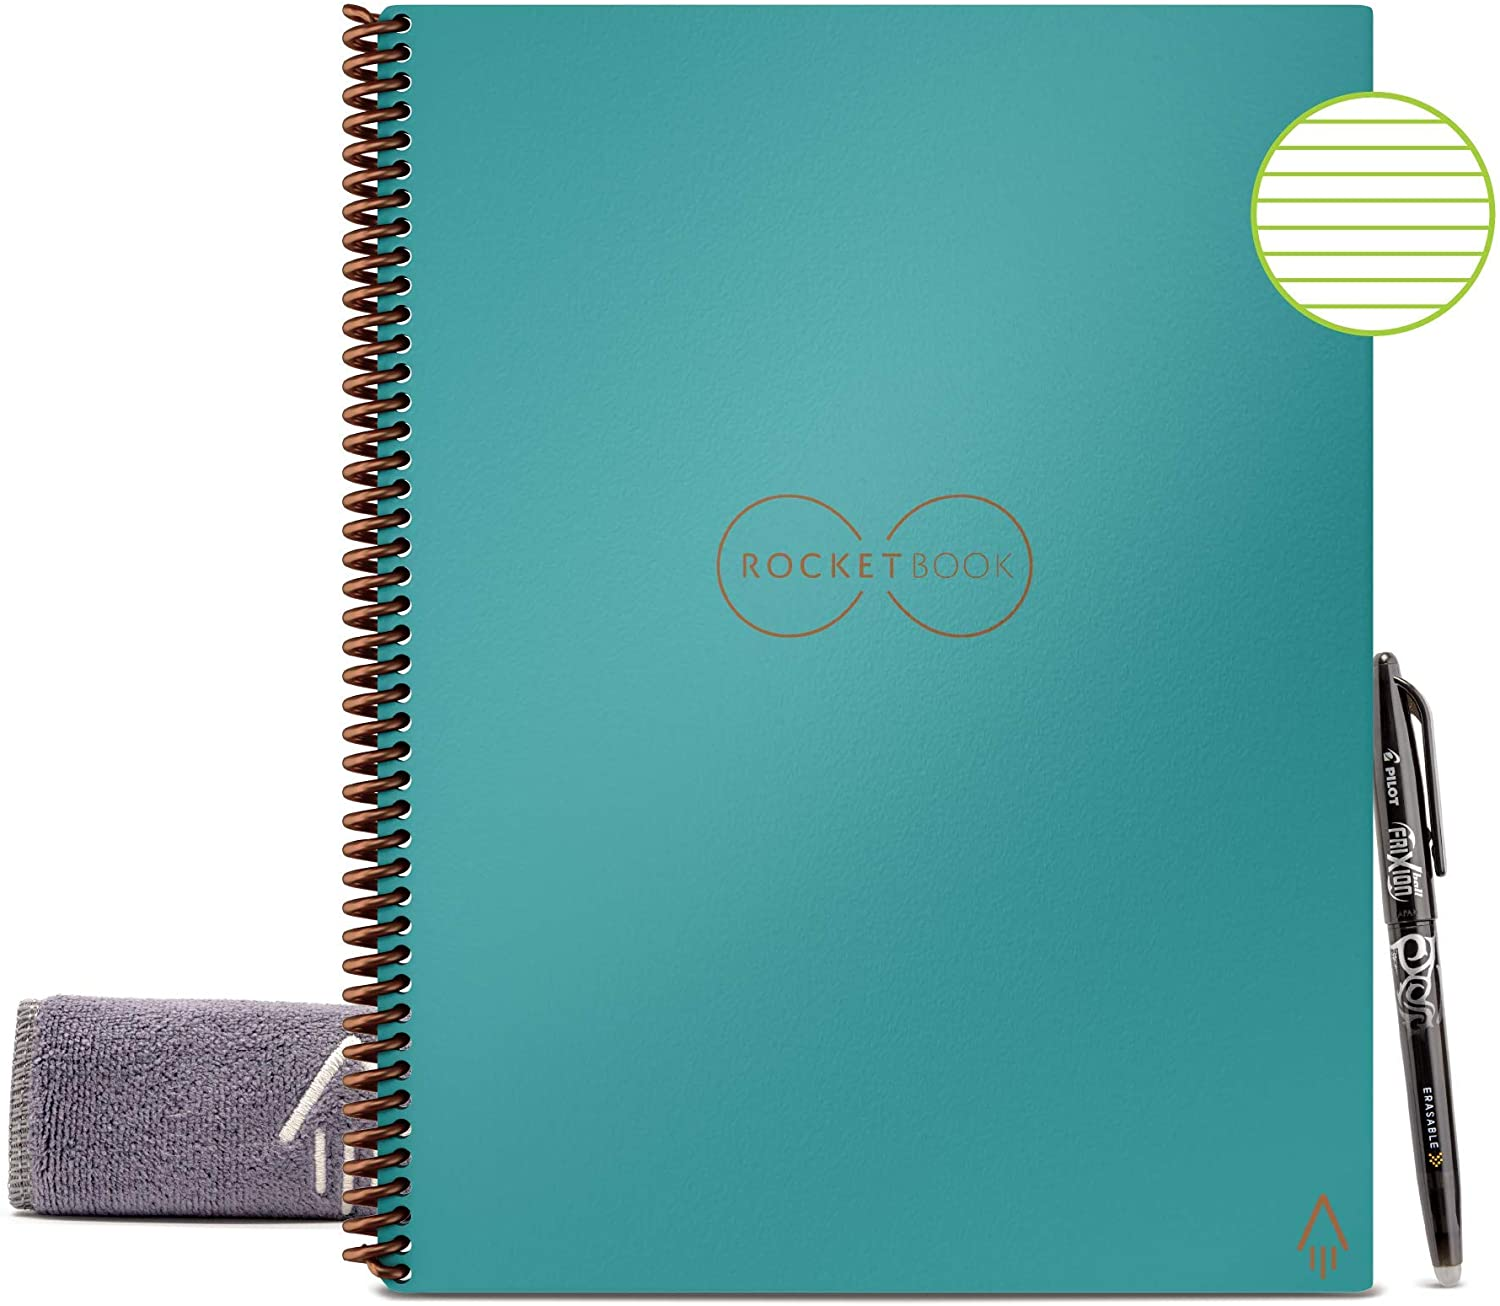 Free Smart Notebook By Mac